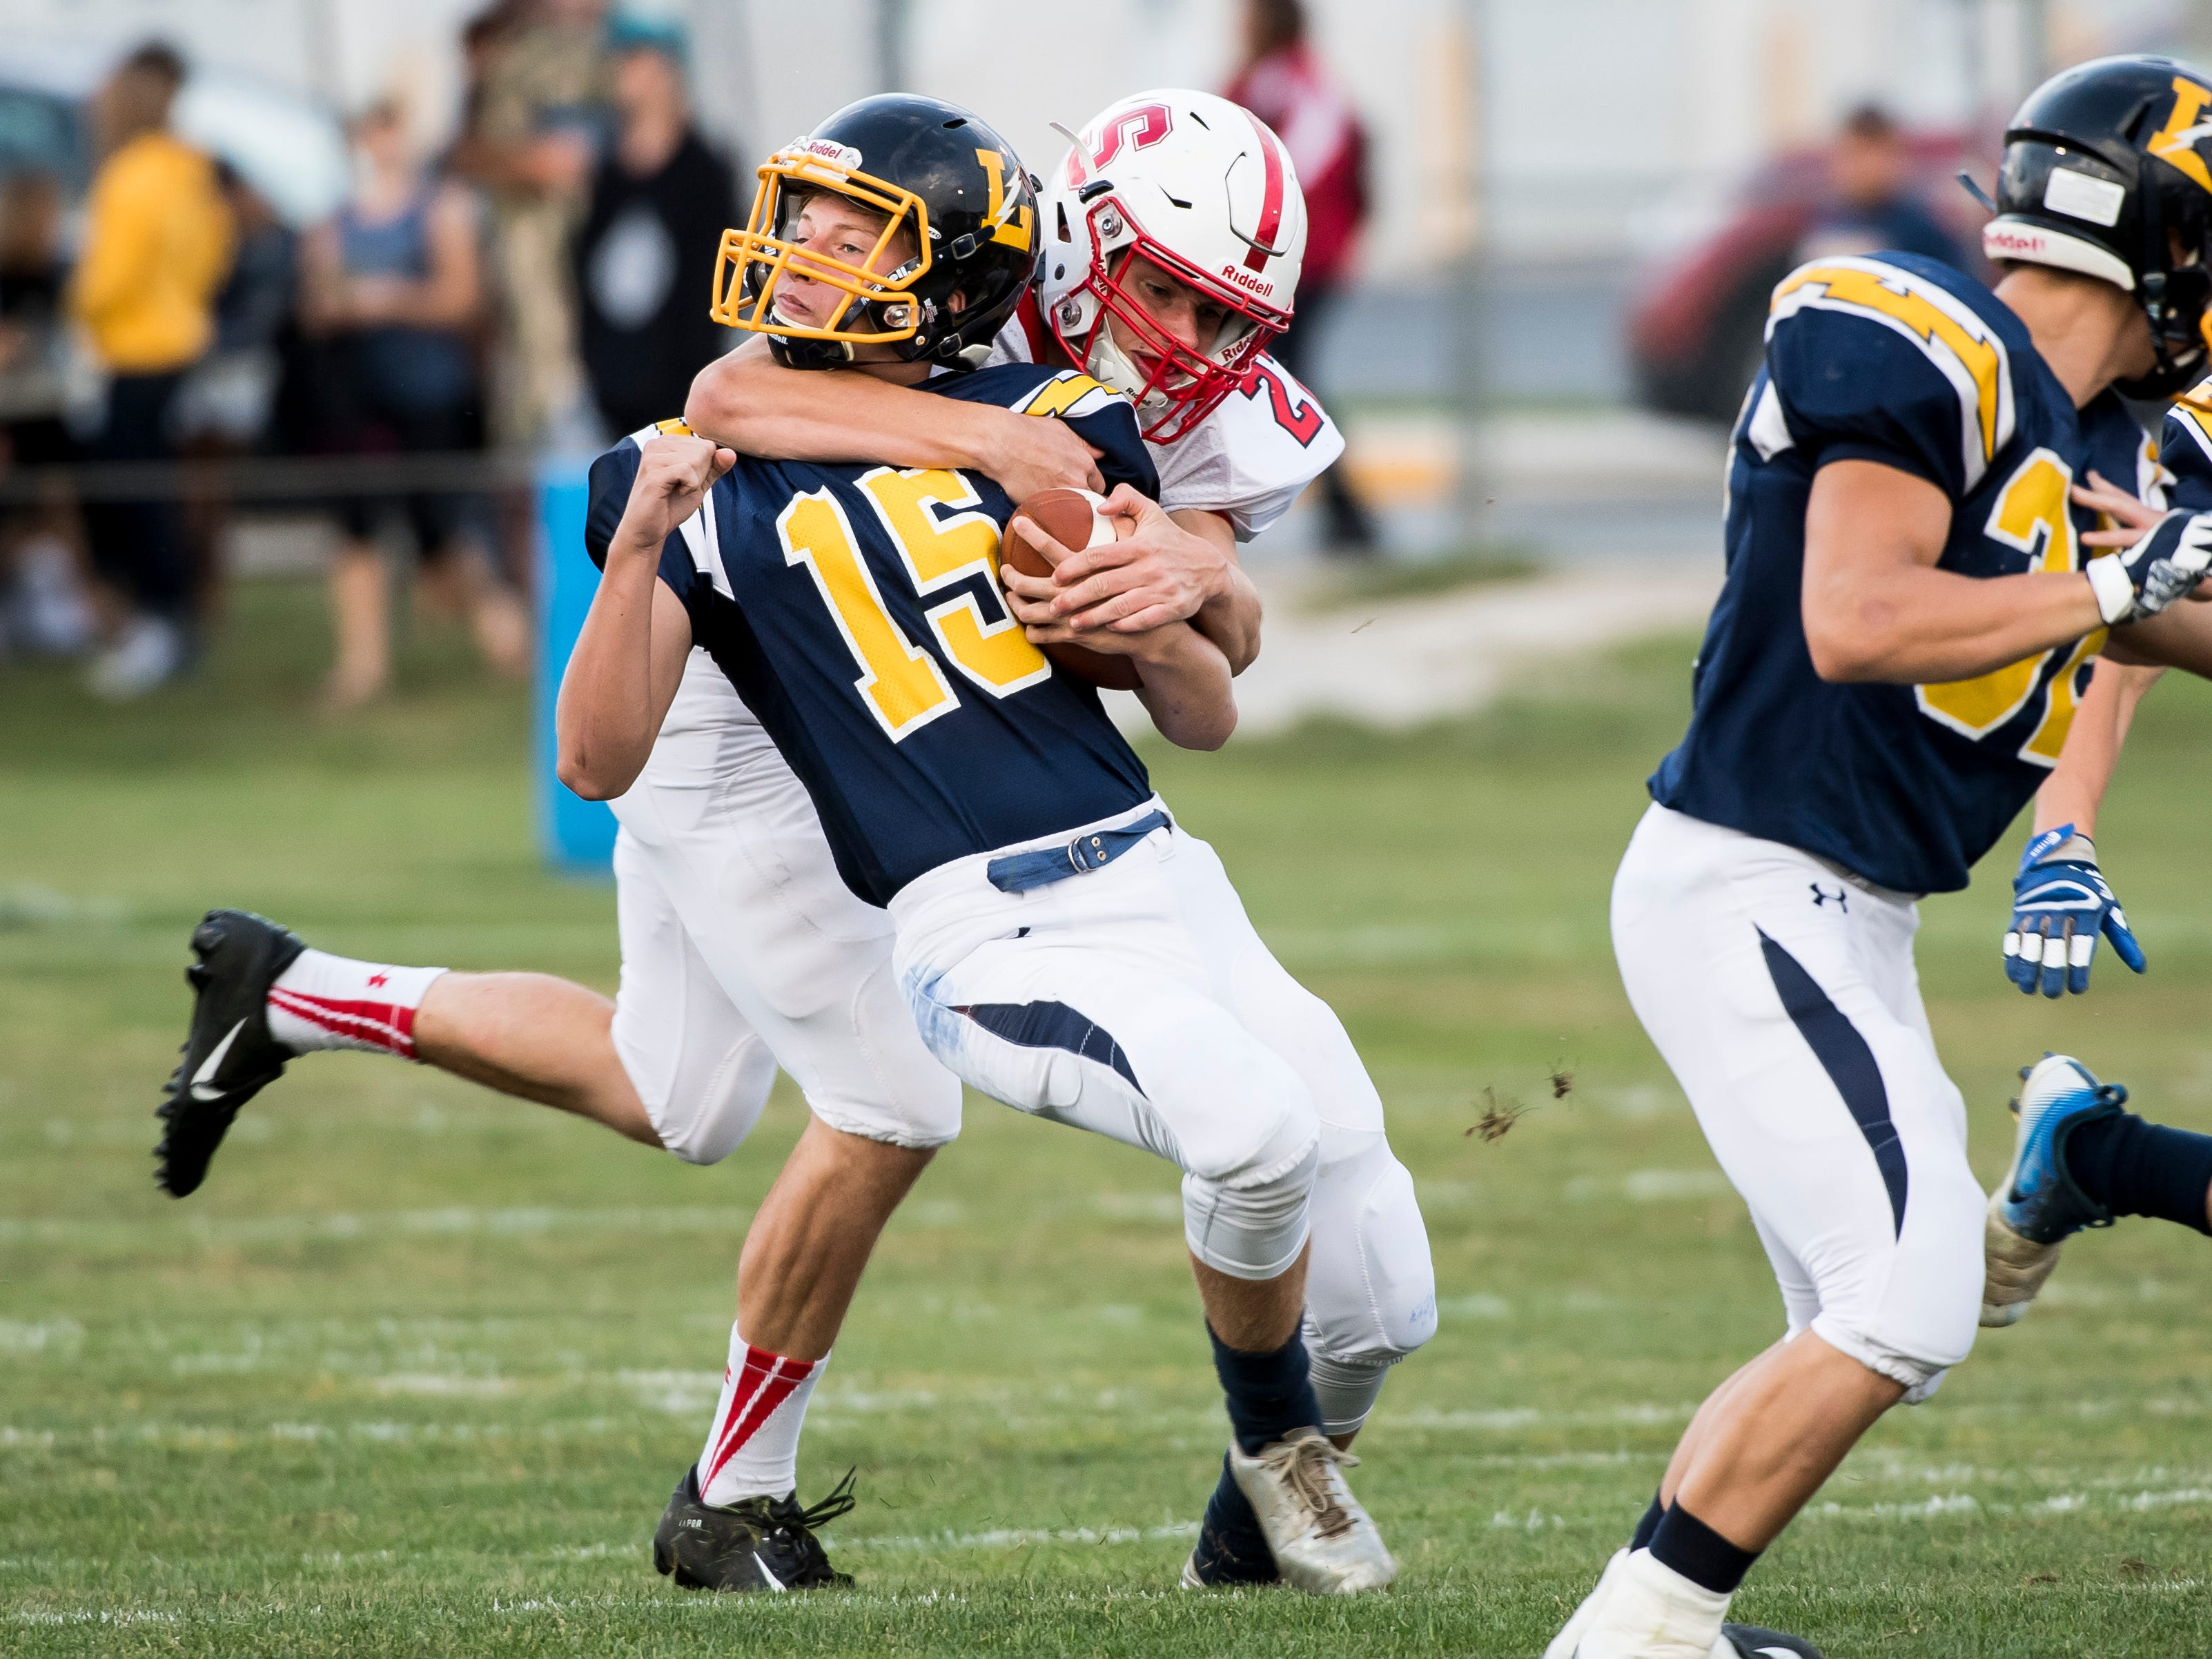 Littlestown's Timothy Huffman (15) is tackled by a Susquehannock player while returning the opening kickoff on Friday, August 31, 2018. The Bolts beat the Warriors 29-14.